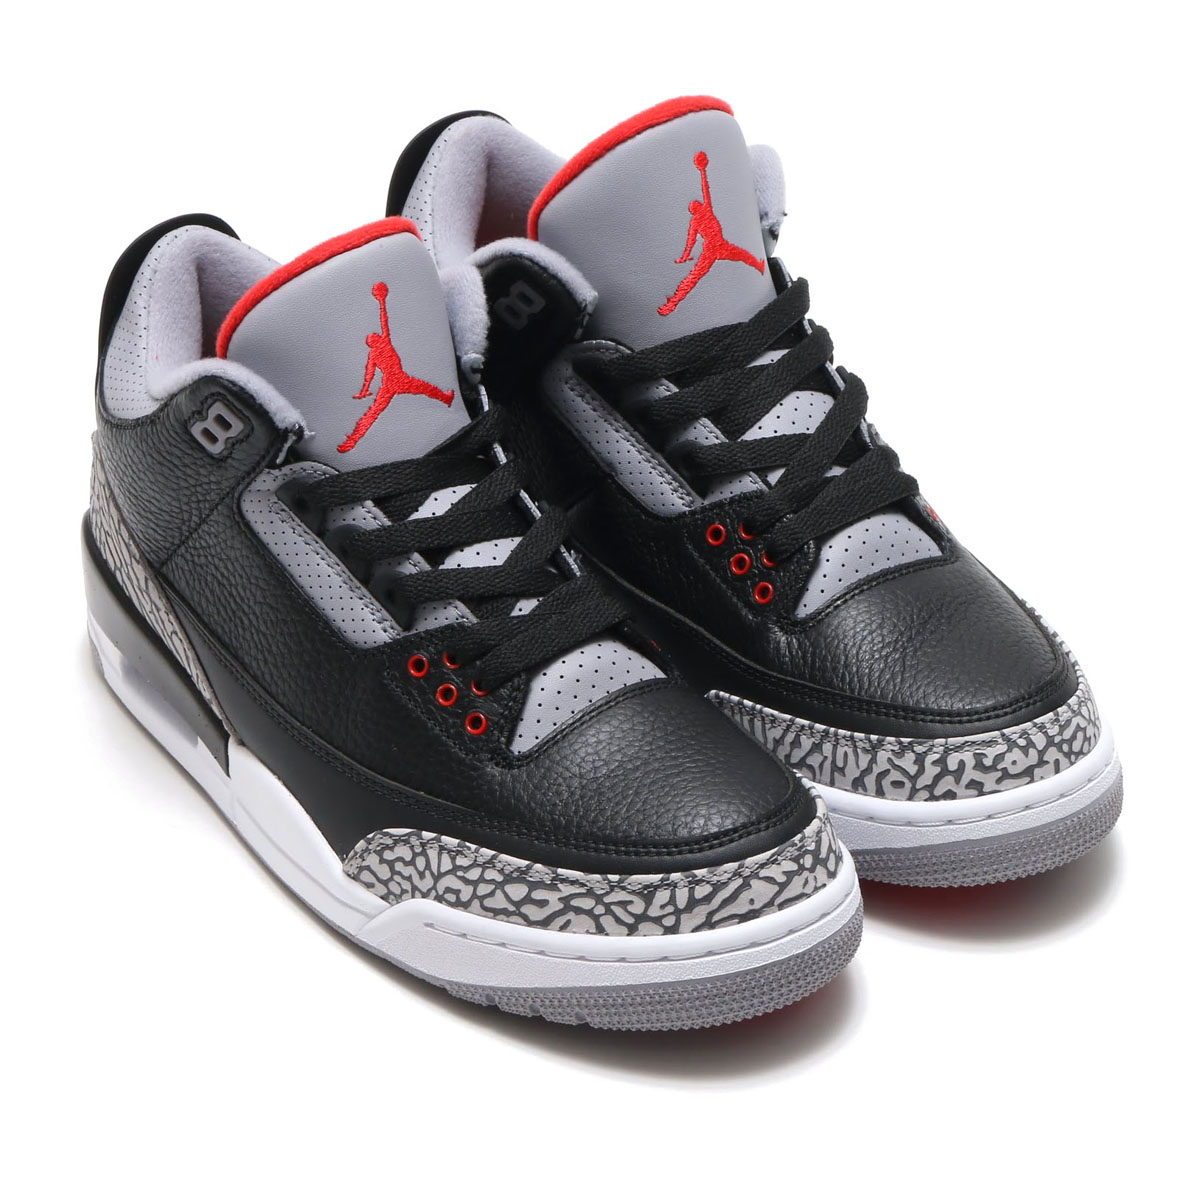 best service 617fd 5b799 NIKE AIR JORDAN 3 RETRO OG (Nike Air Jordan 3 nostalgic OG) (BLACK FIRE RED-CEMENT  GREY-WHITE) 18SP-S